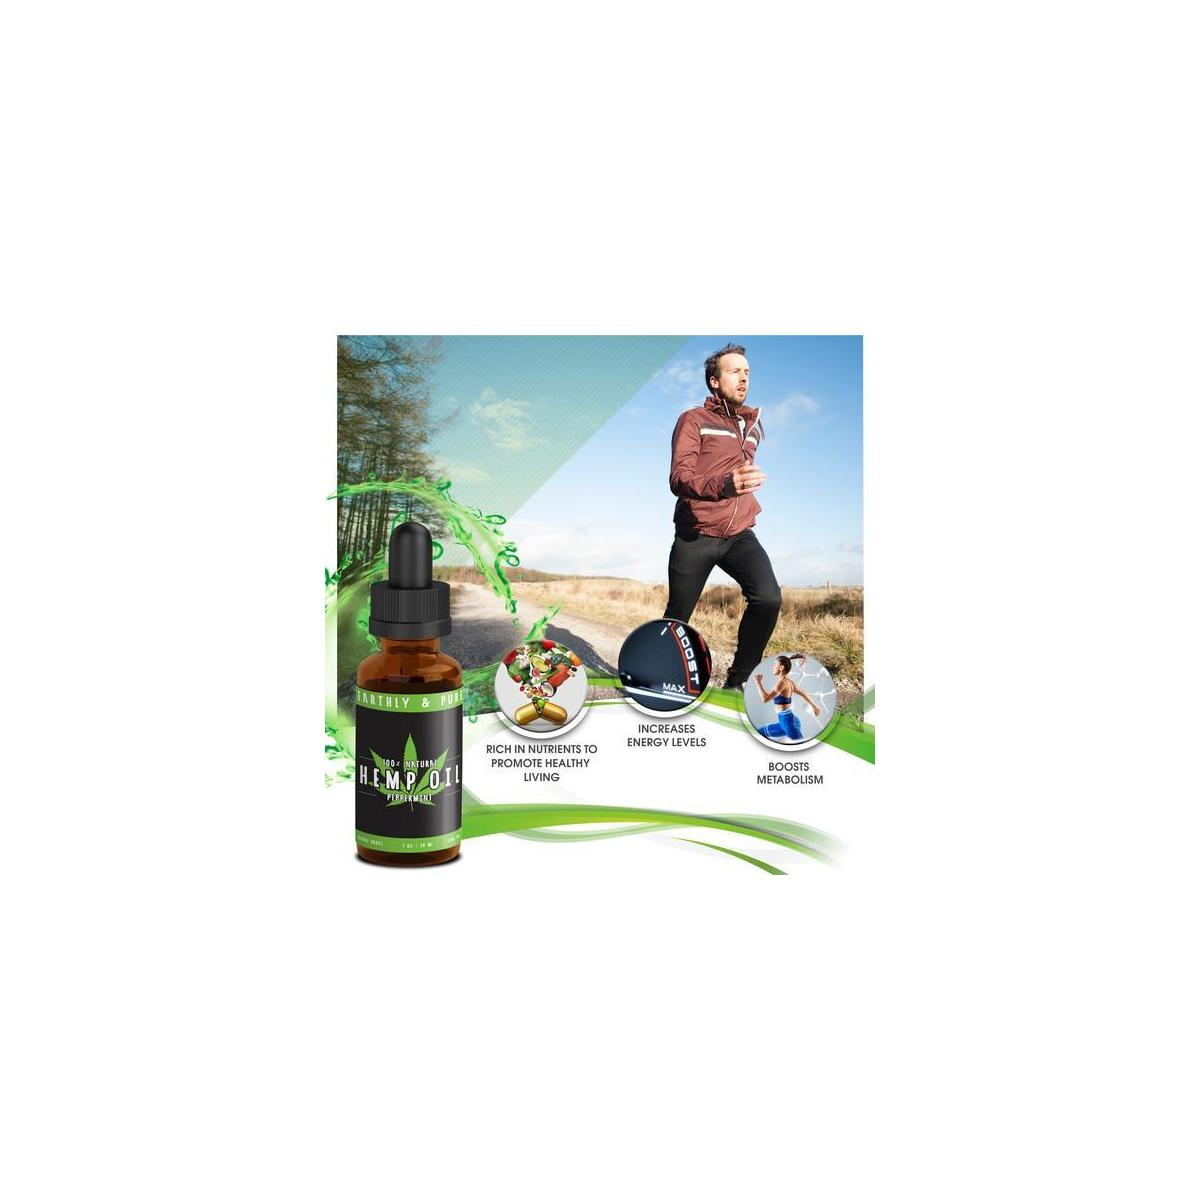 100% Organic Hemp Oil with Peppermint Flavor - Premium Omega 3 6 9 for Natural Relief from Pain Anxiety & Stress While Improving Sleep, Metabolism, and Health